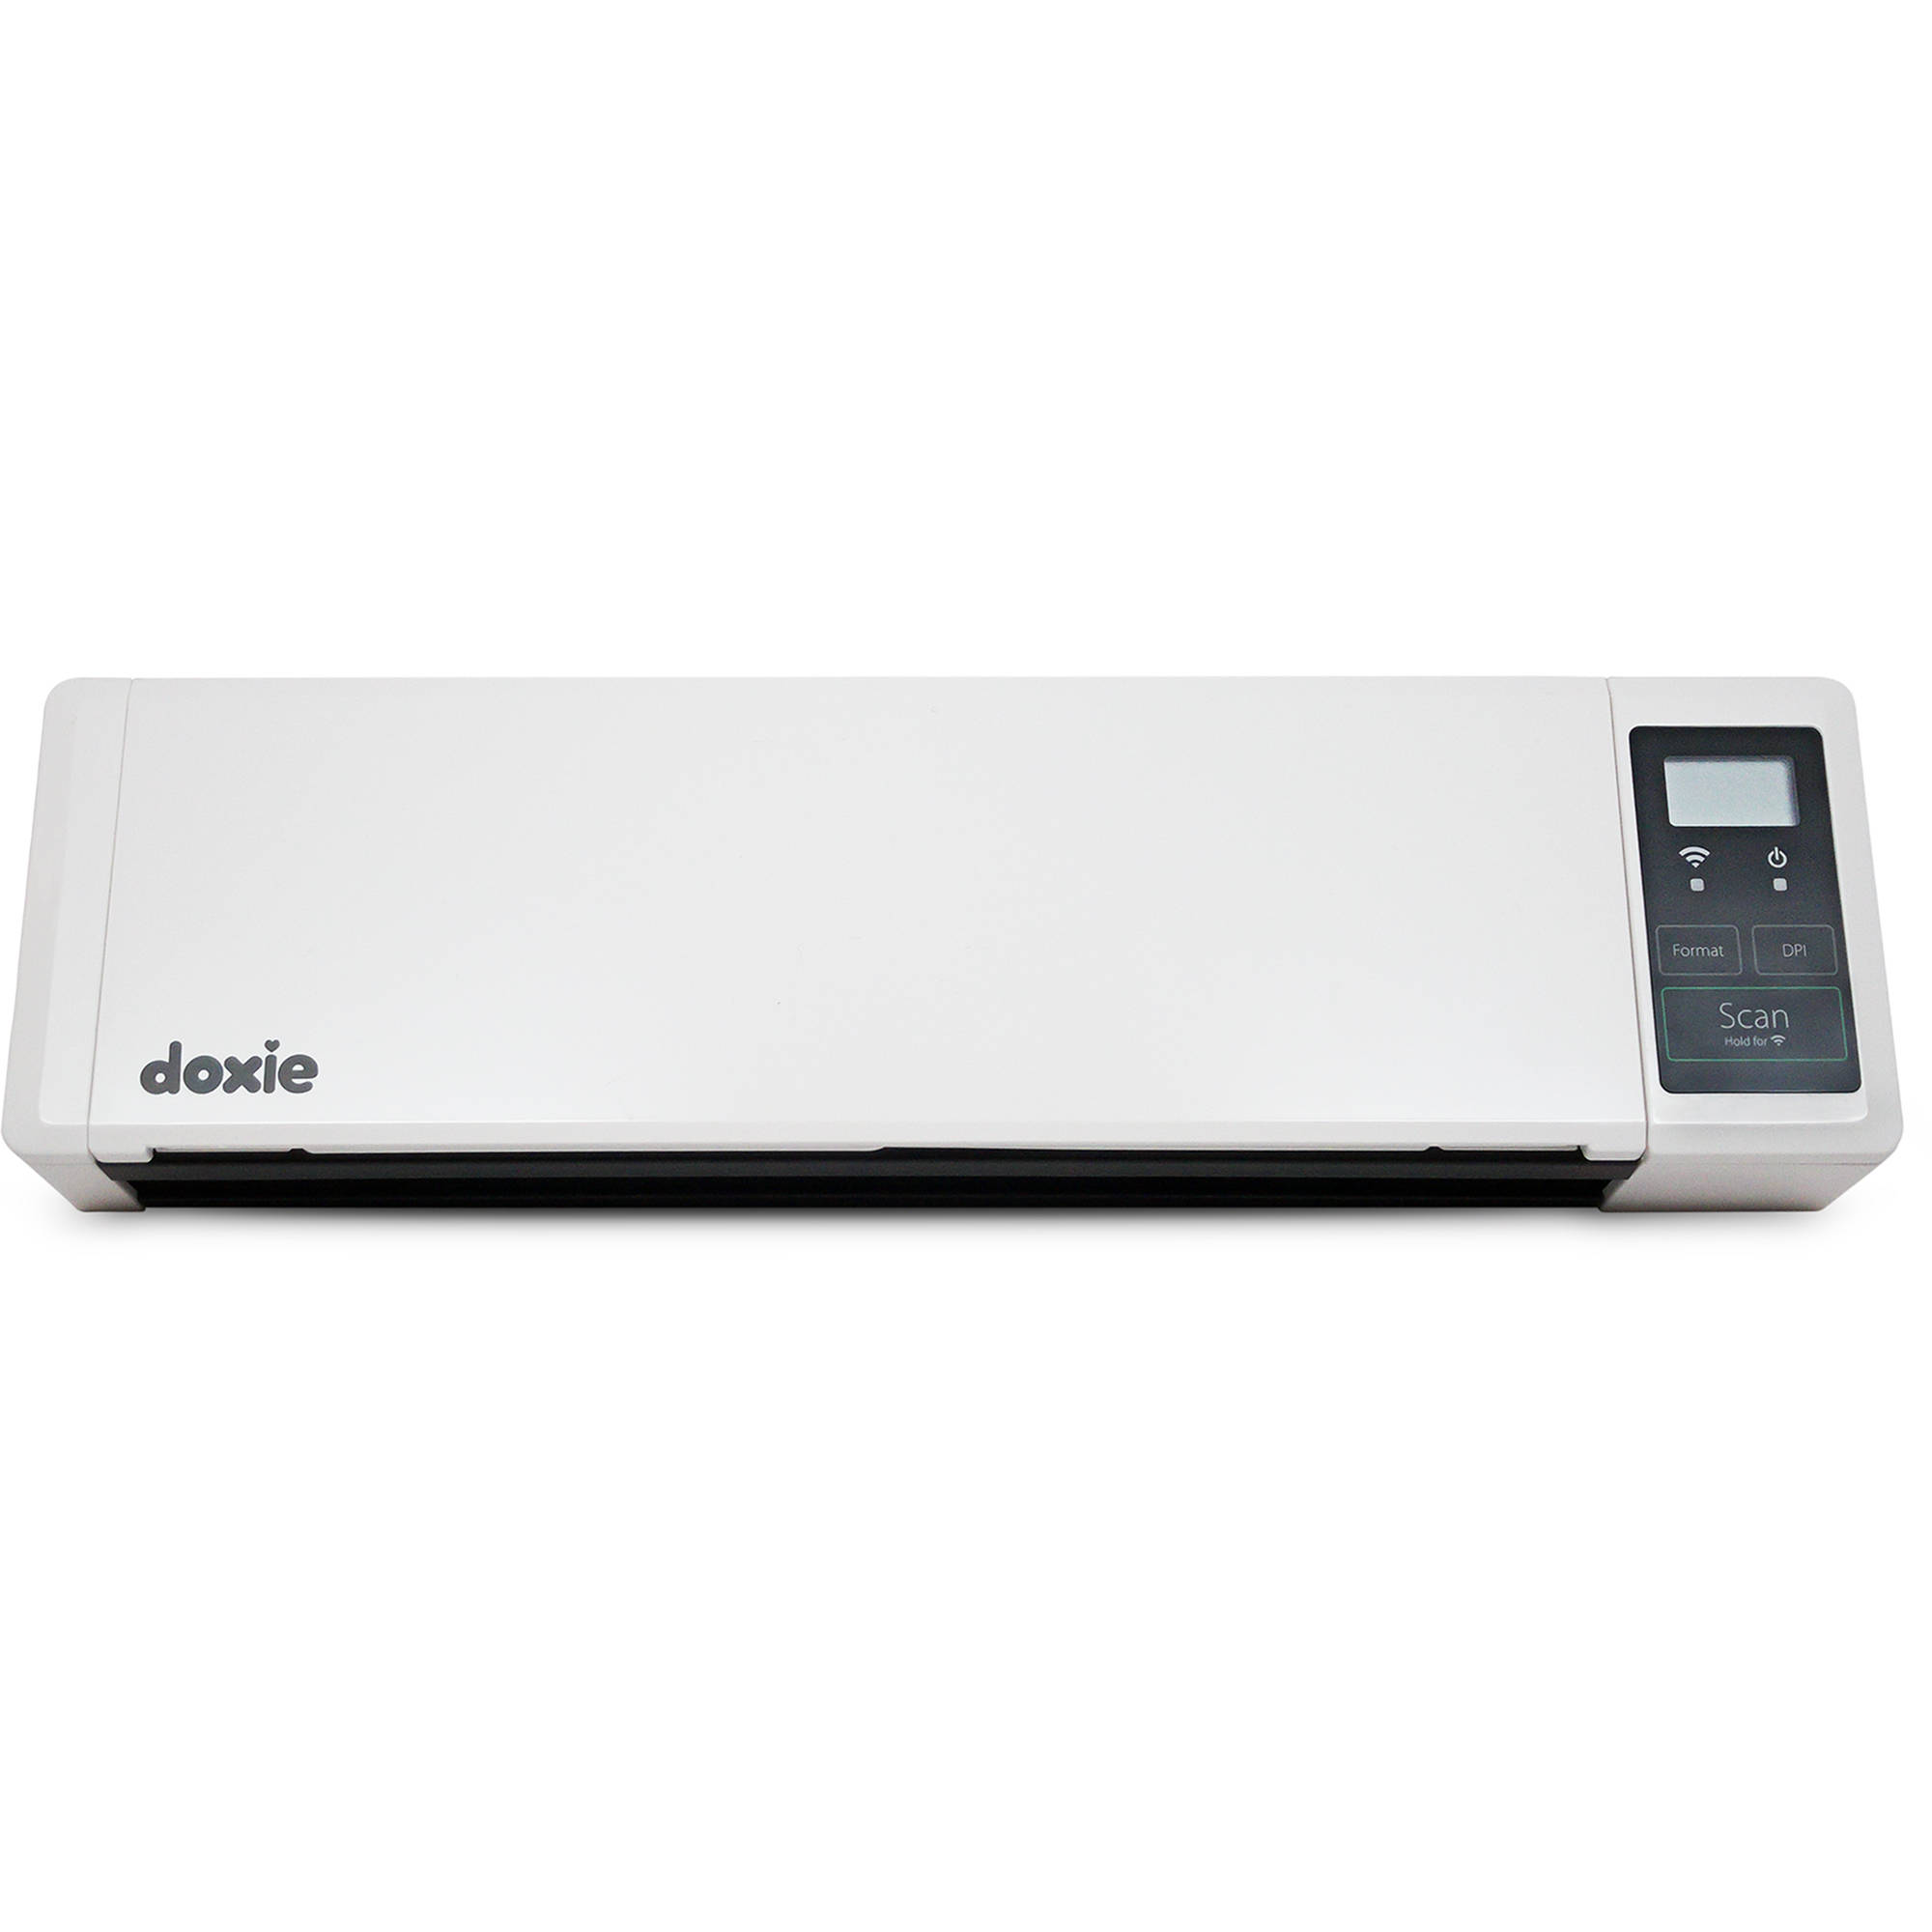 Doxie Q Wireless Rechargeable Document Scanner DX300 B&H Photo